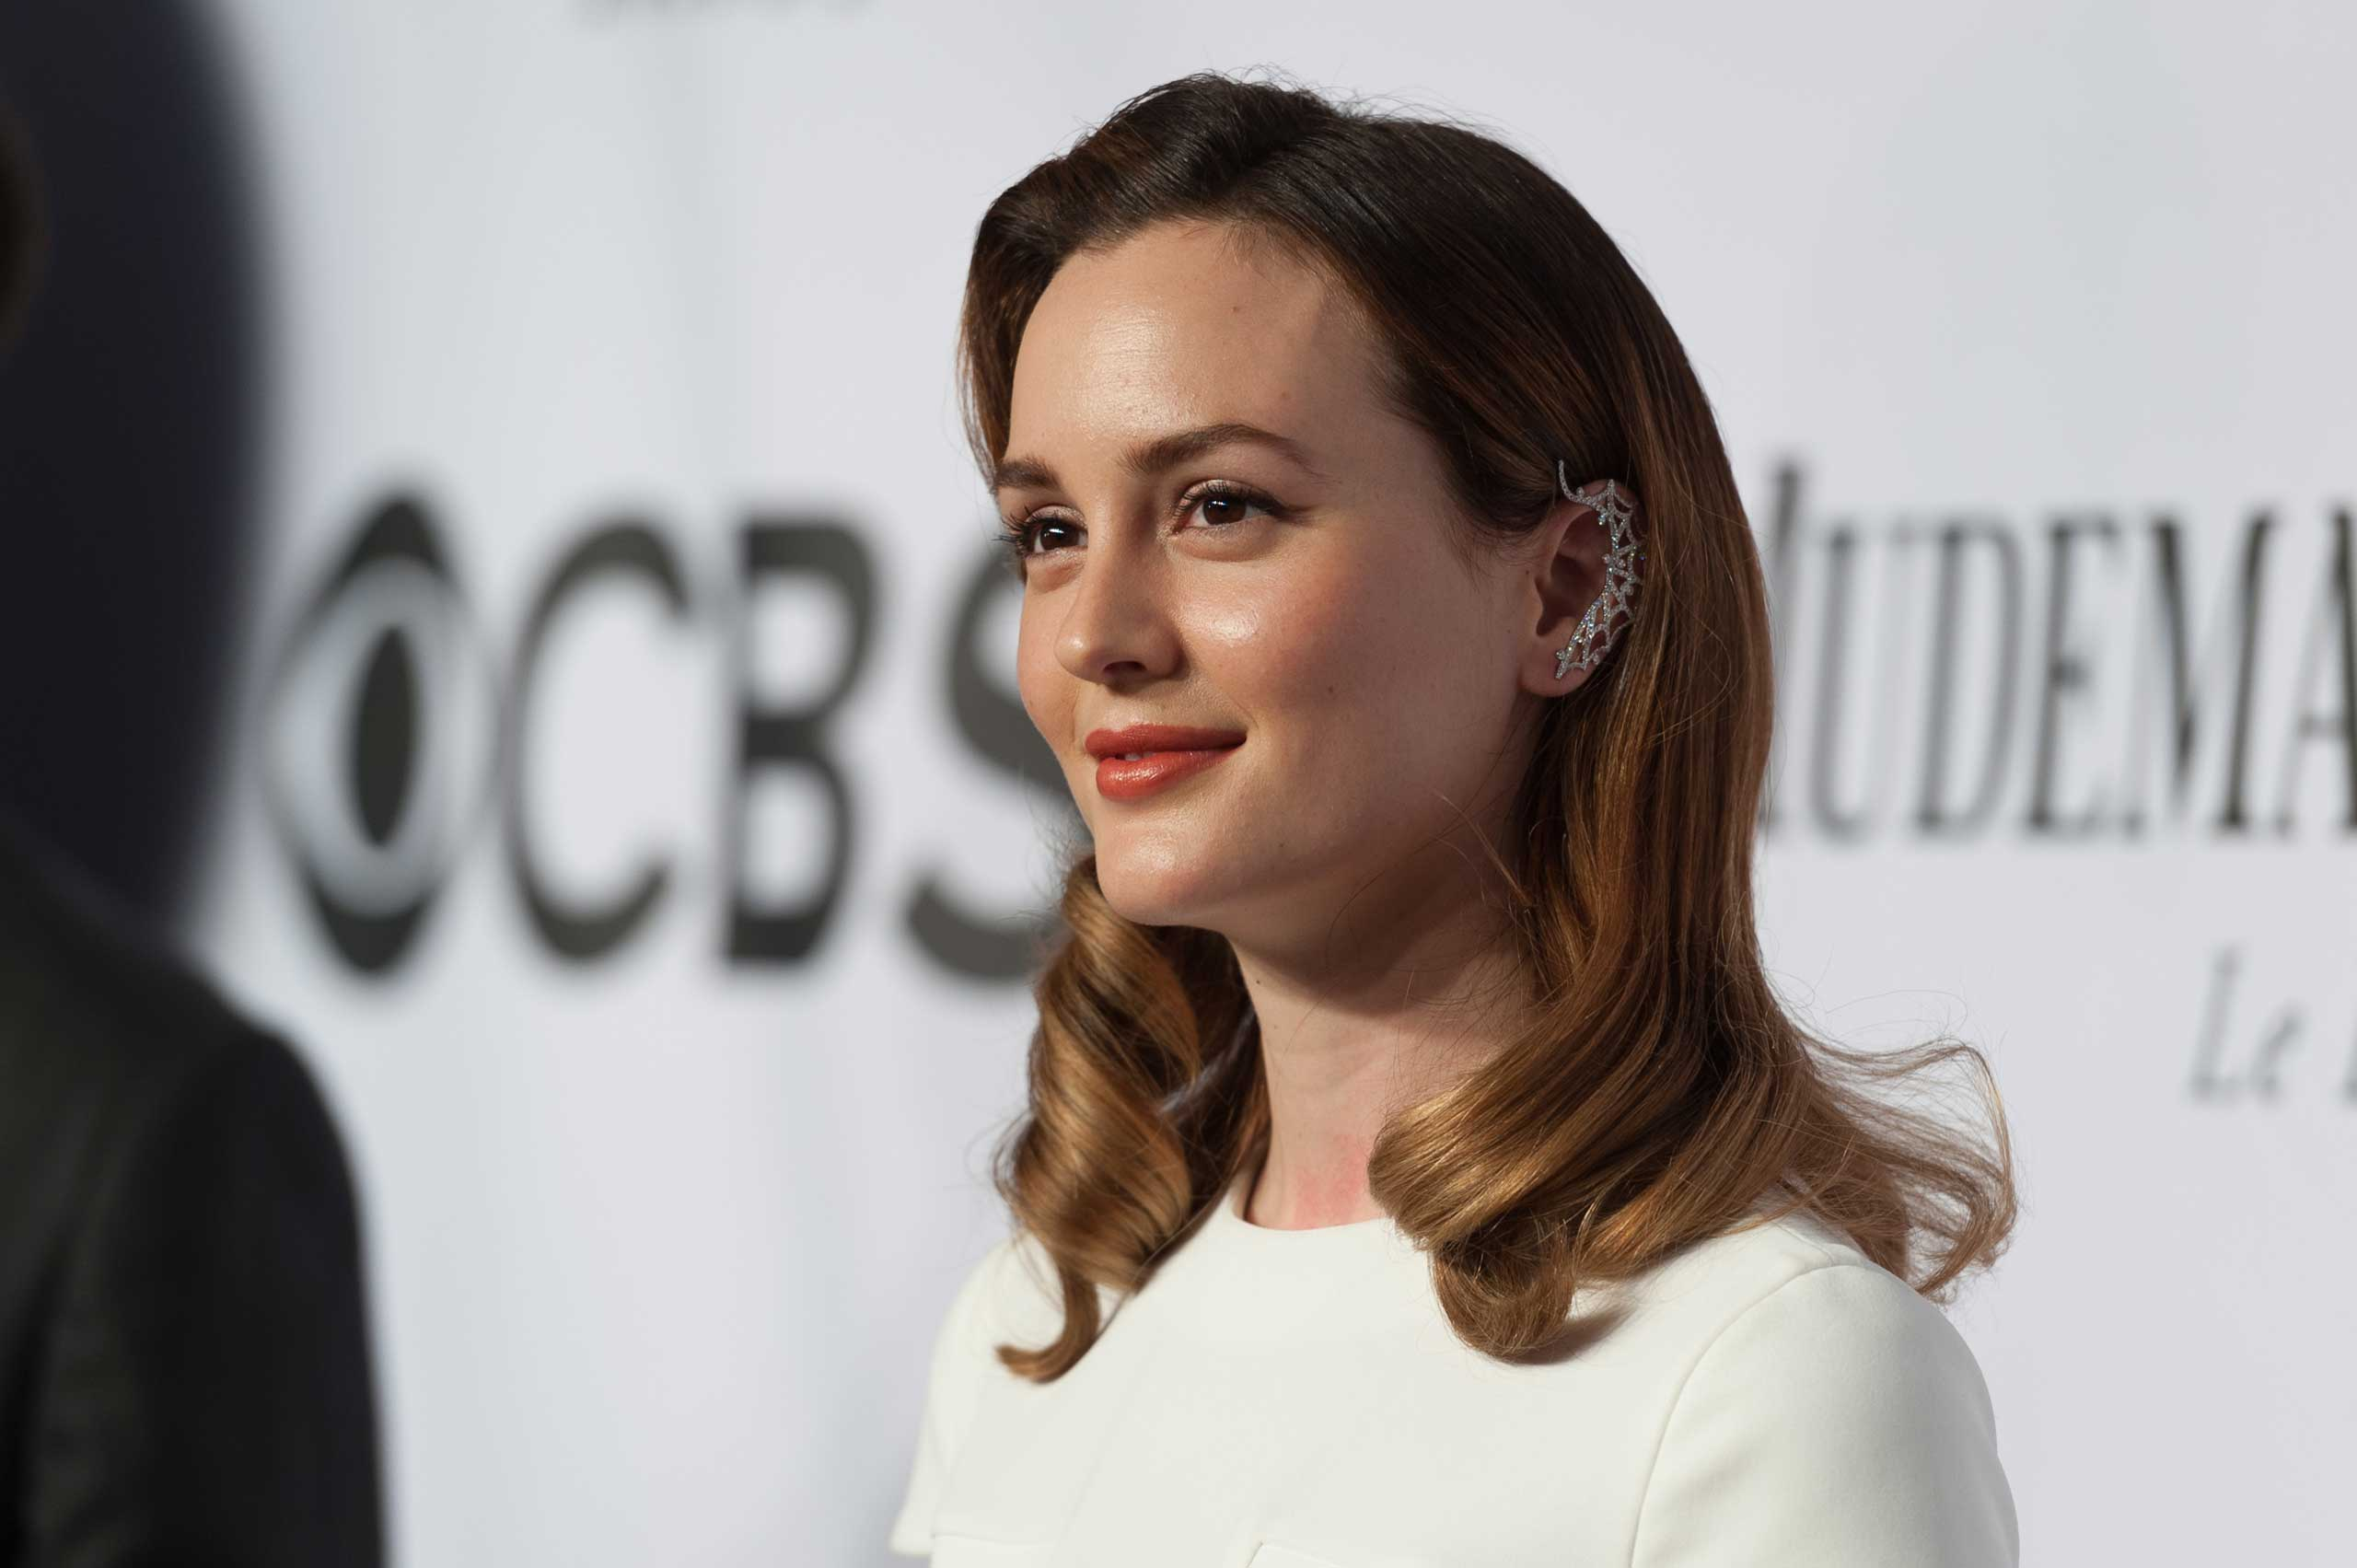 "<strong>Leighton Meester</strong> told OOTD magazine in February about her biggest role model. ""American writer Betty Friedan — she fought for gender equality and wrote the great book <i>The Feminine Mystique</i> which sparked the beginning of a second-wave feminism,"" Meester said. ""I believe in equal rights for men and women."""